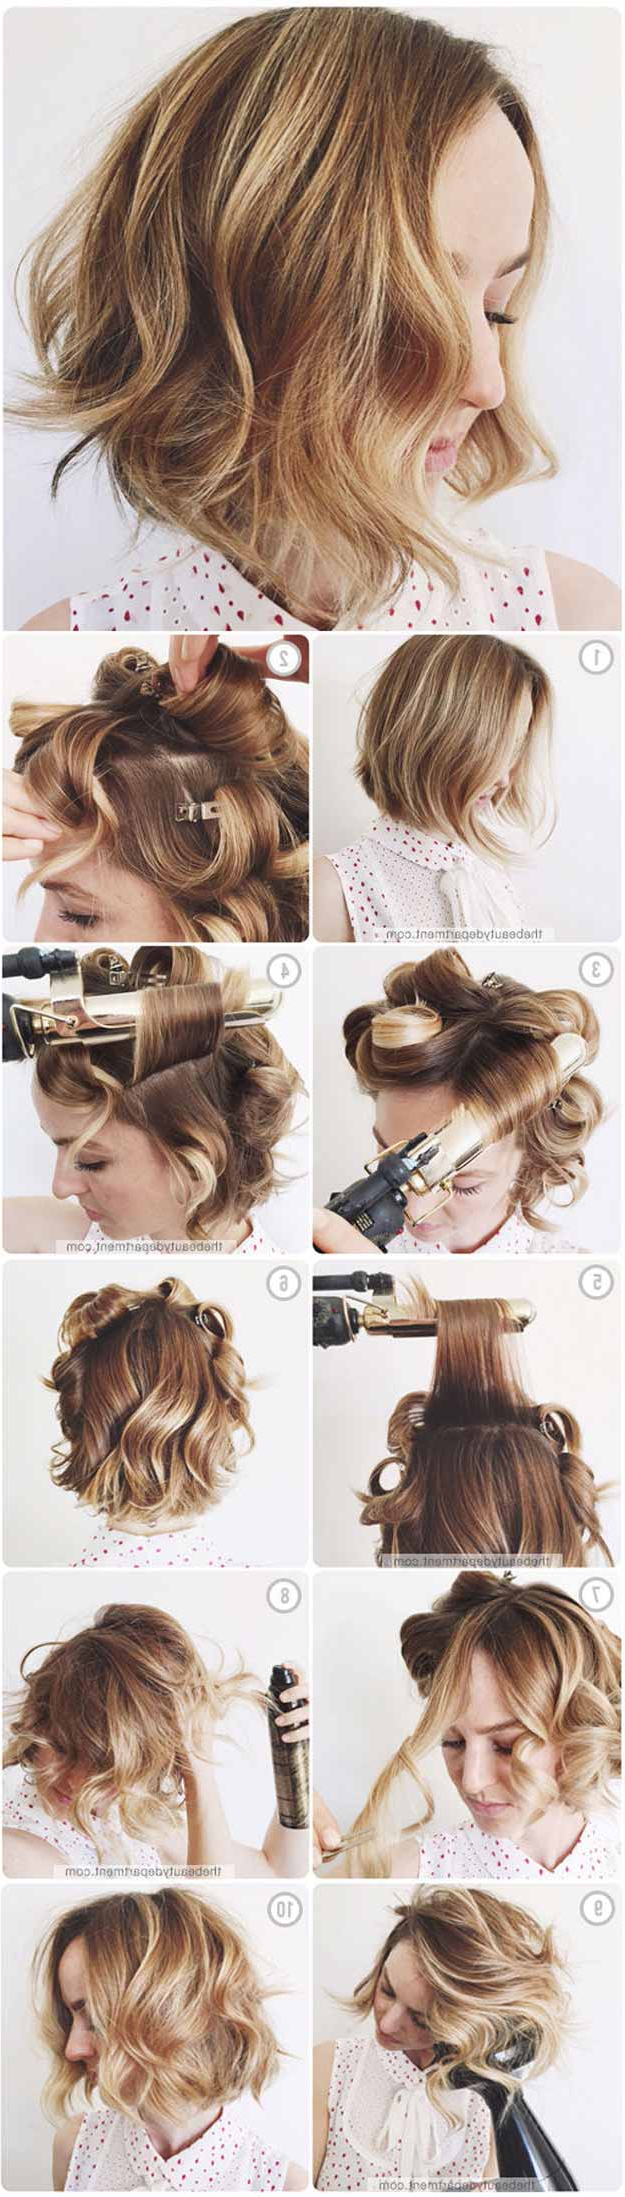 33 Best Hairstyles For Your 20S – The Goddess With Regard To 20S Short Hairstyles (View 9 of 25)